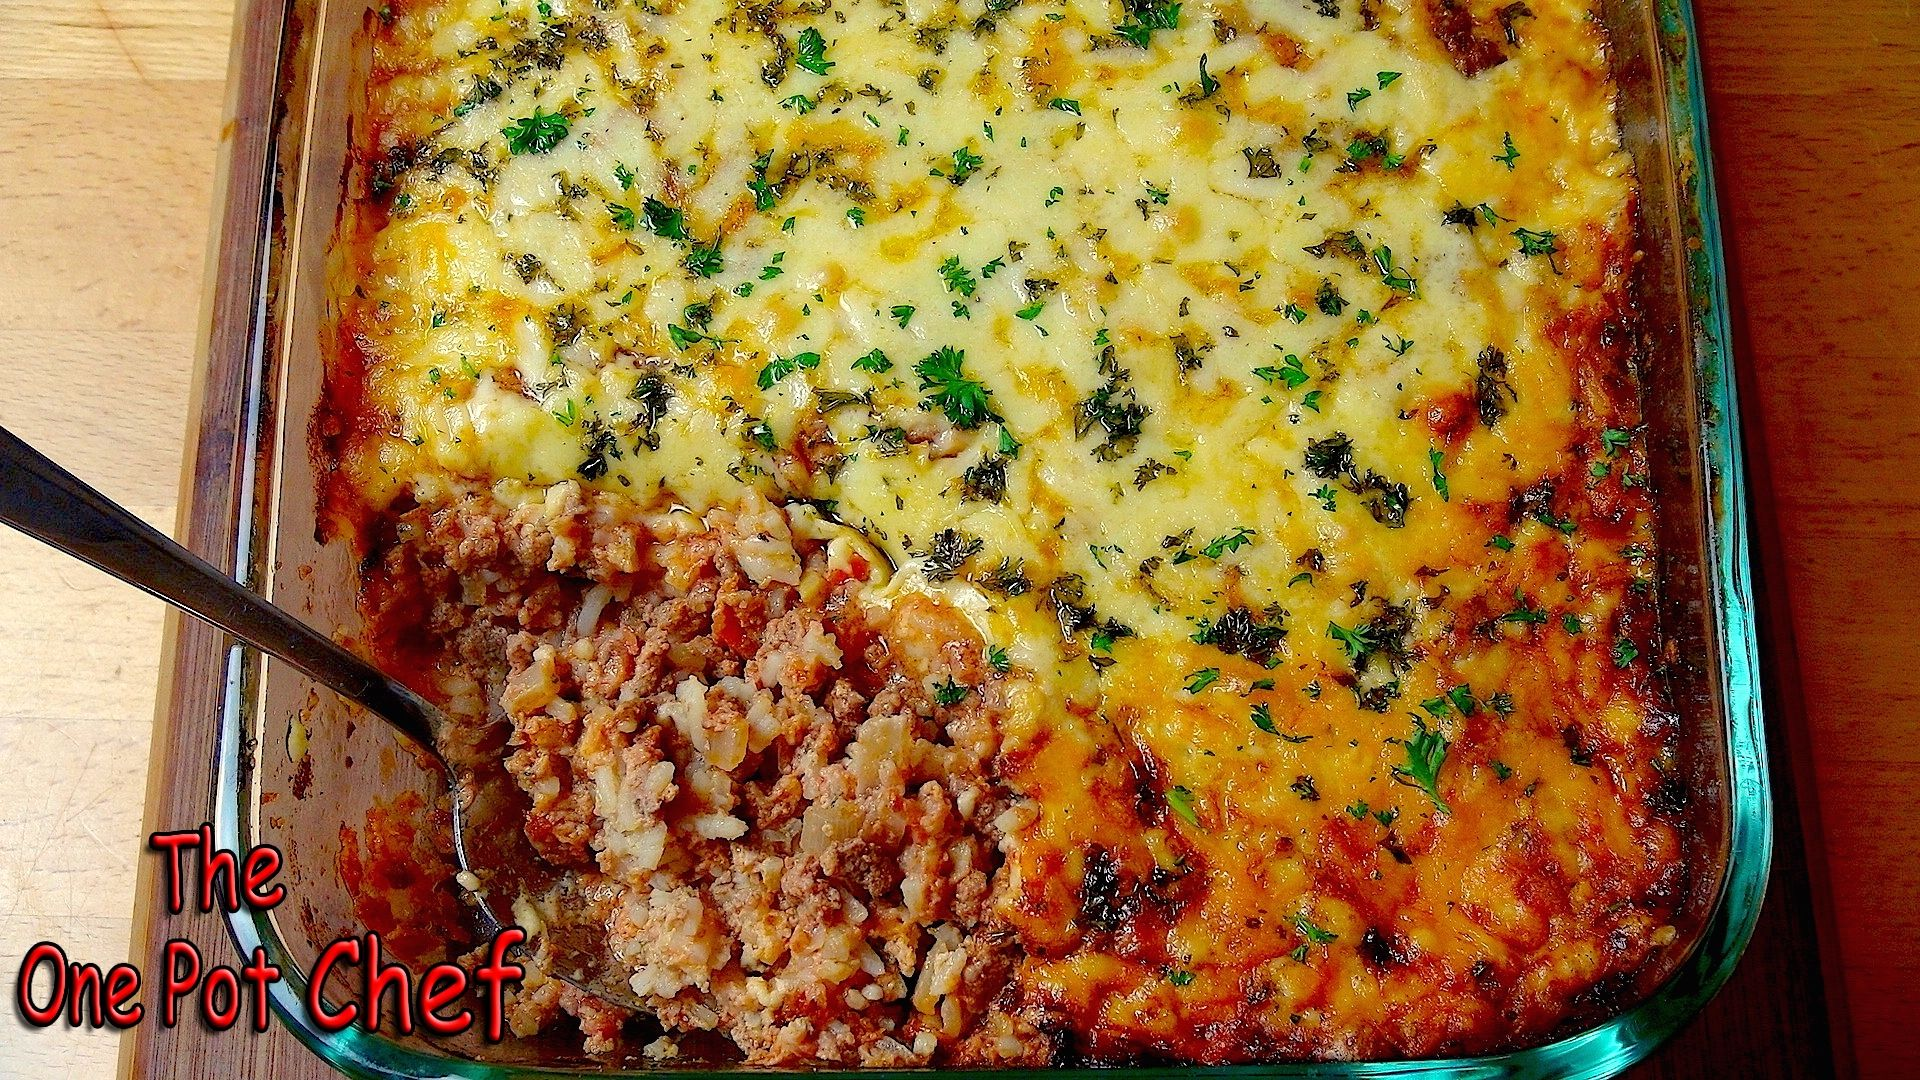 NEW VIDEO: Bolognese Rice Bake! Watch the full recipe video on YouTube: http://youtu.be/2xLSW0Yz0jQ